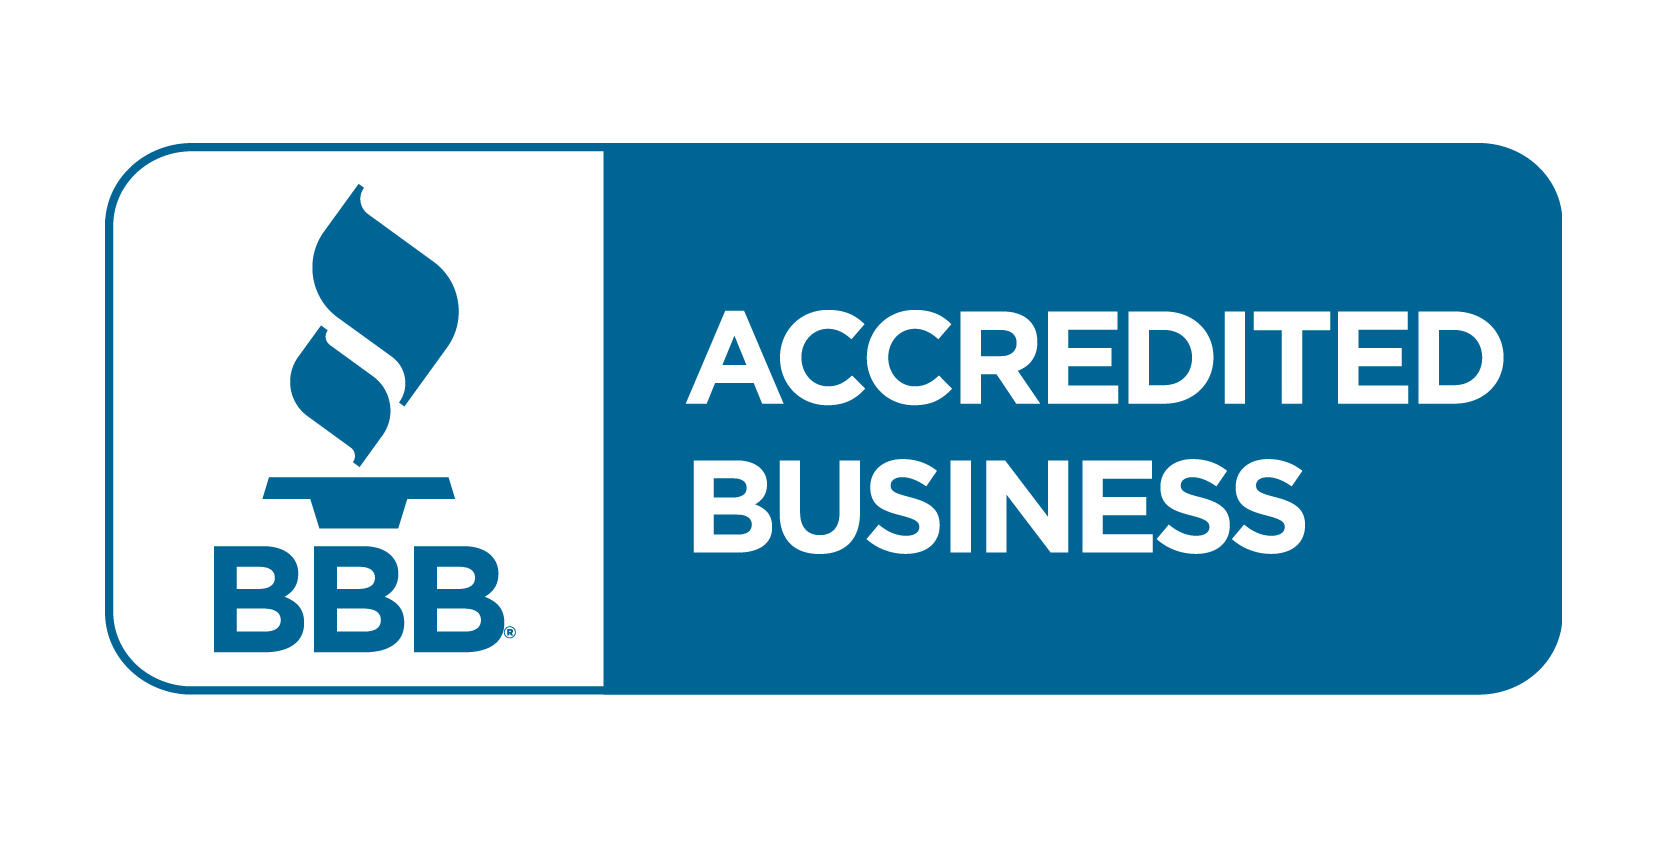 BBB Accredited Business badge for The Spy Shop